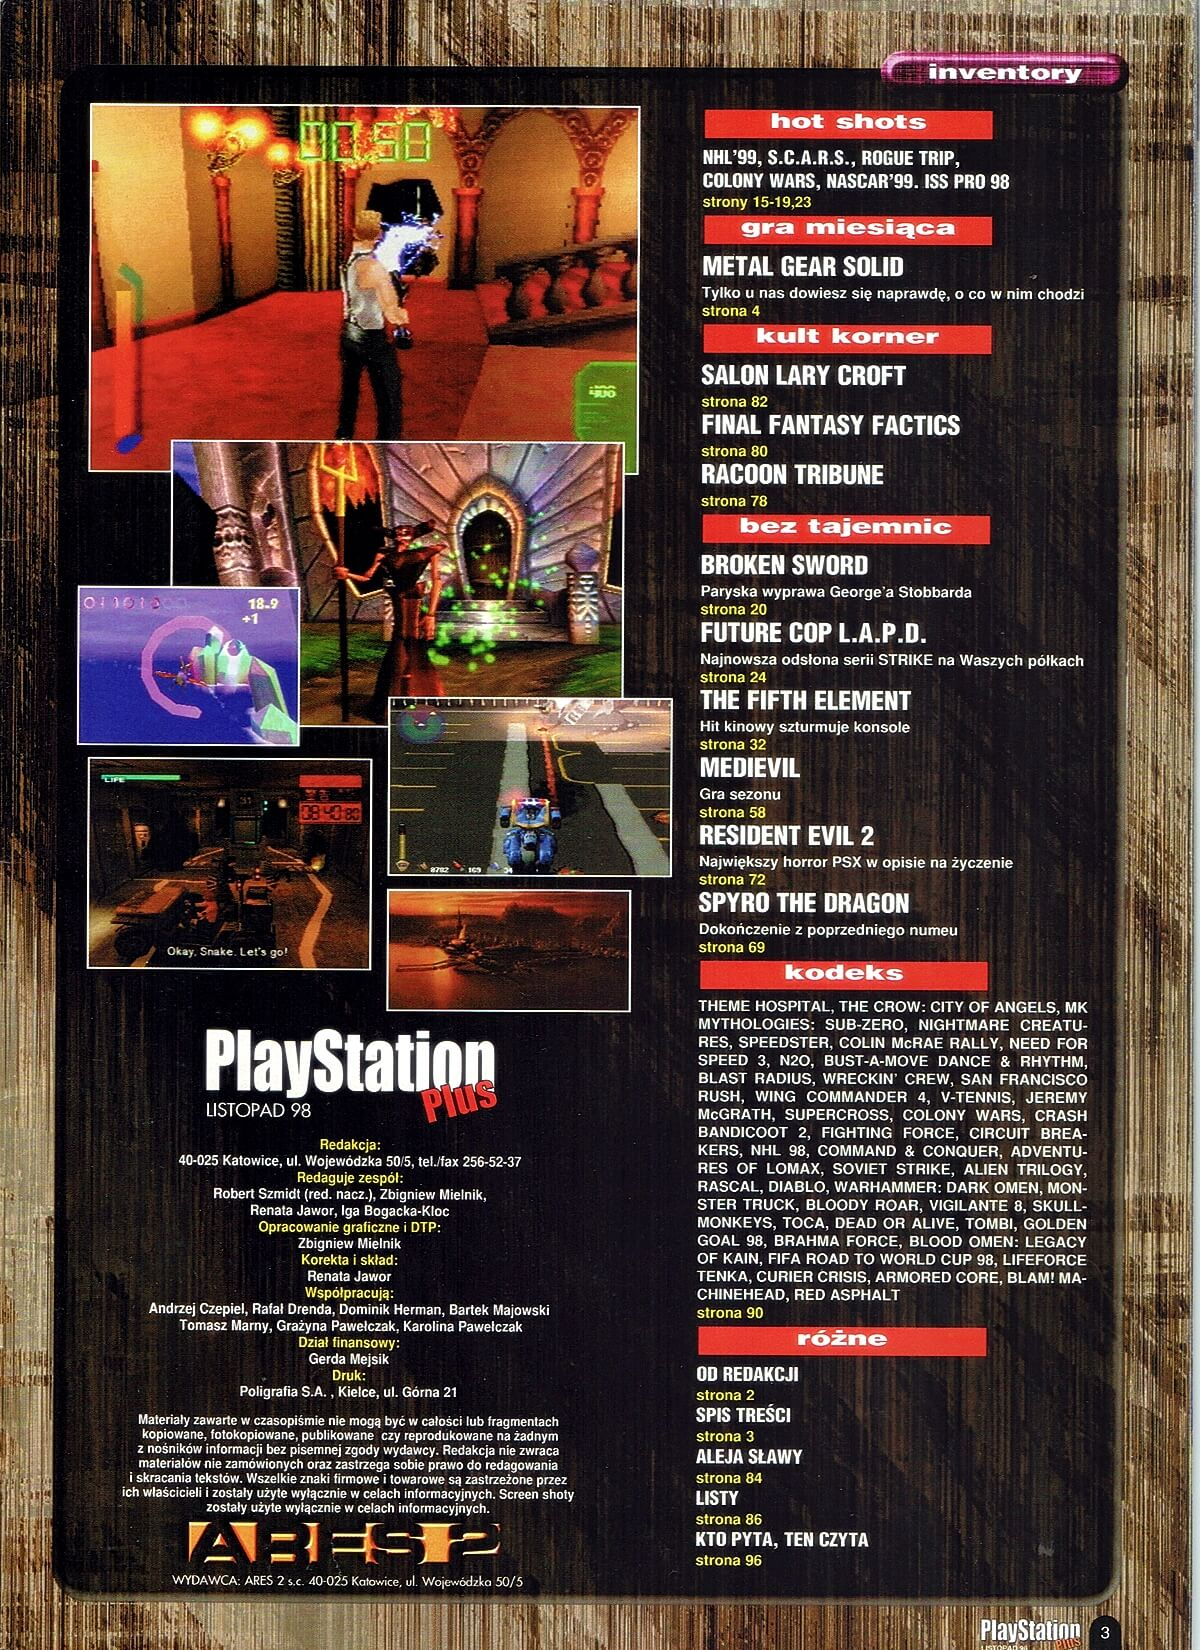 playstation plus magazyn 15 - PlayStation Plus 6/98